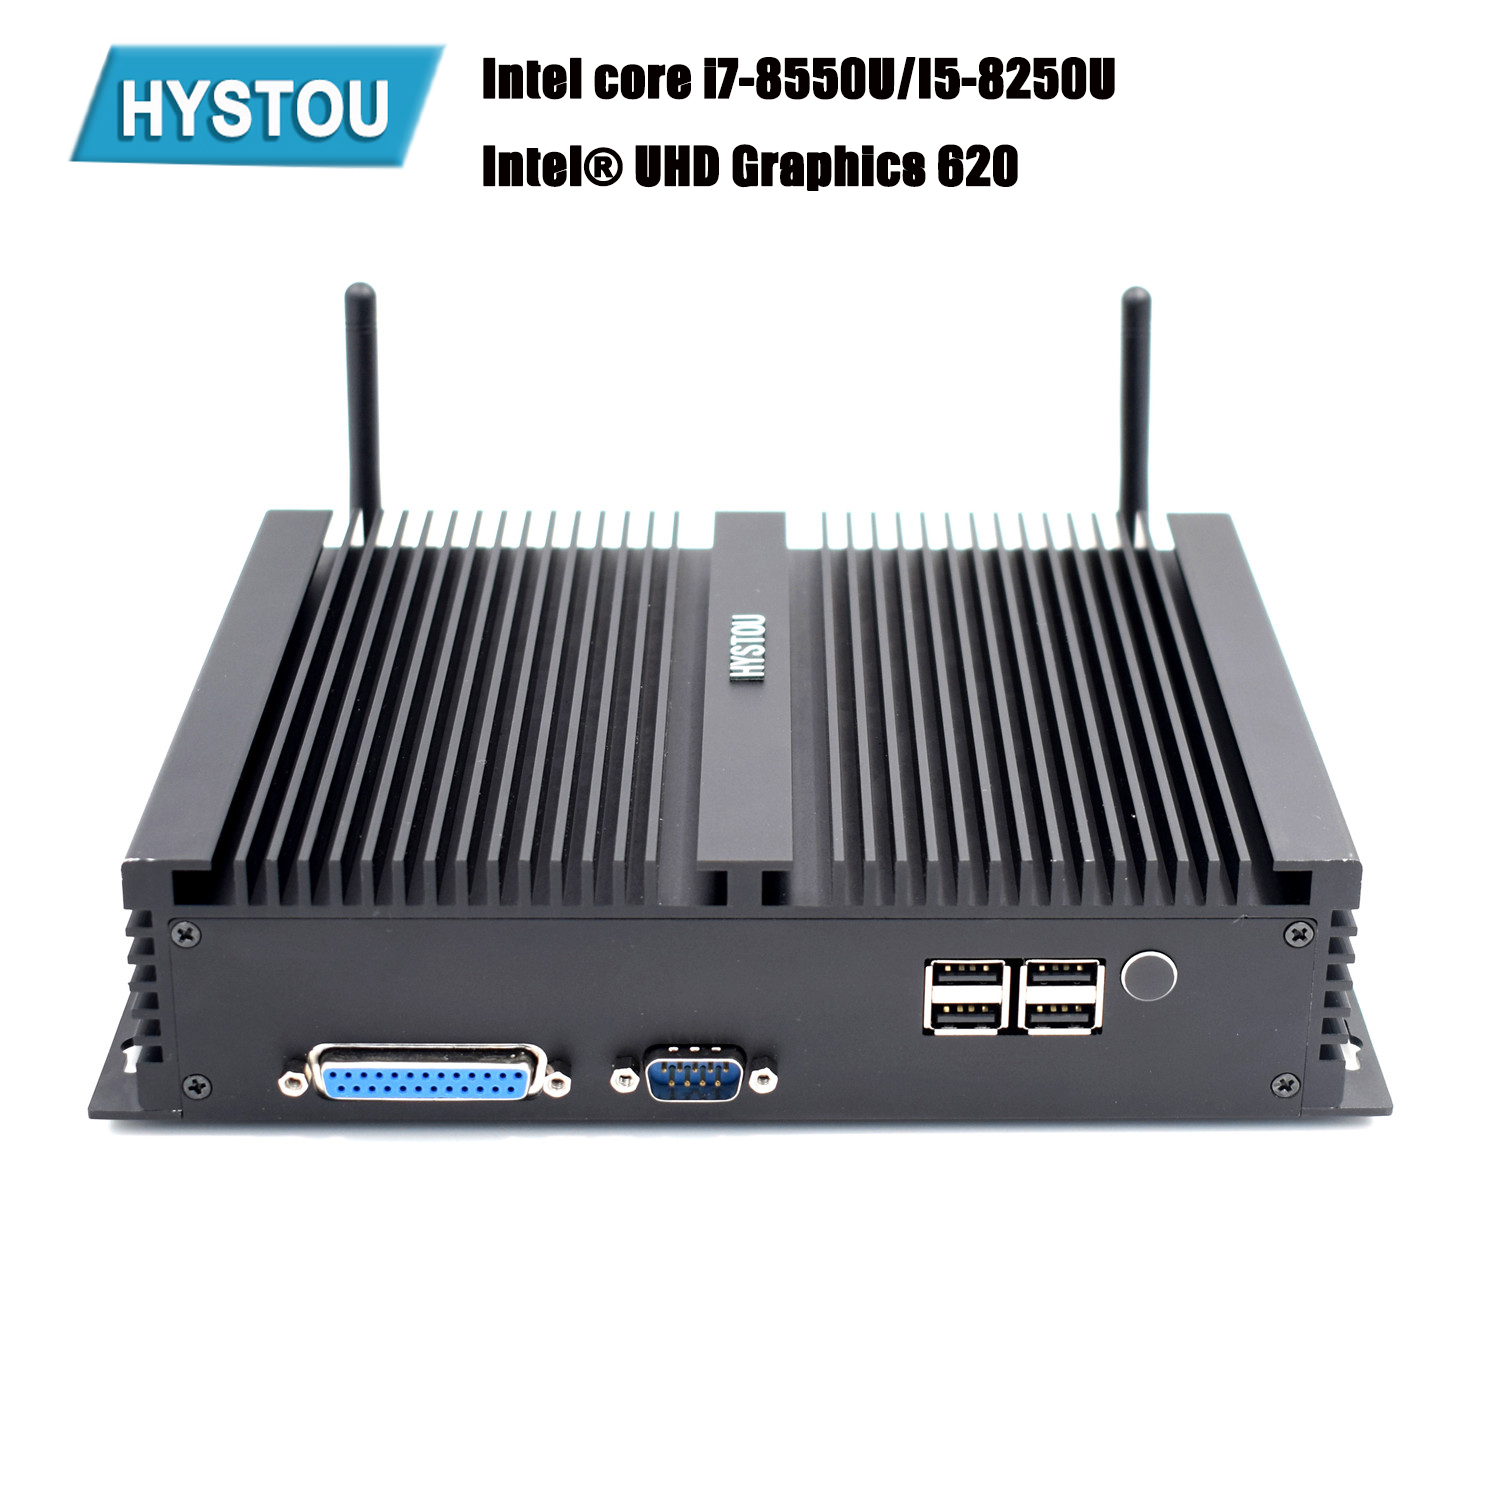 Hystou Mini PC 8th Intel Core Industrie Fanless i5 8250U i7 8550U Windows 10 DDR4 HDMI DP 4K RS232 HTPC NUC Dual Lan m2 WIFI